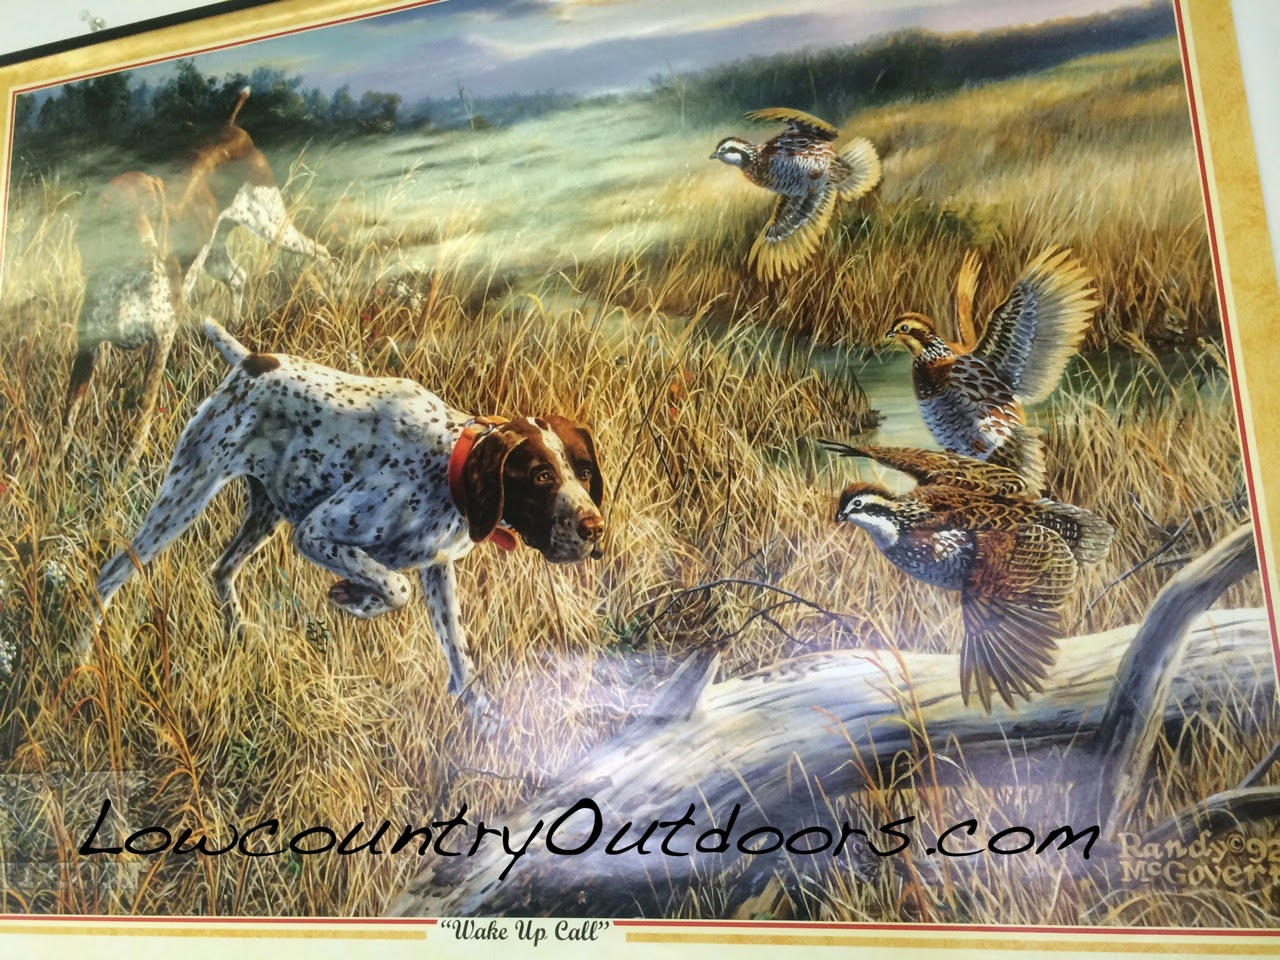 pointer flushing a few bobwhite quail the decline in quail numbers ...